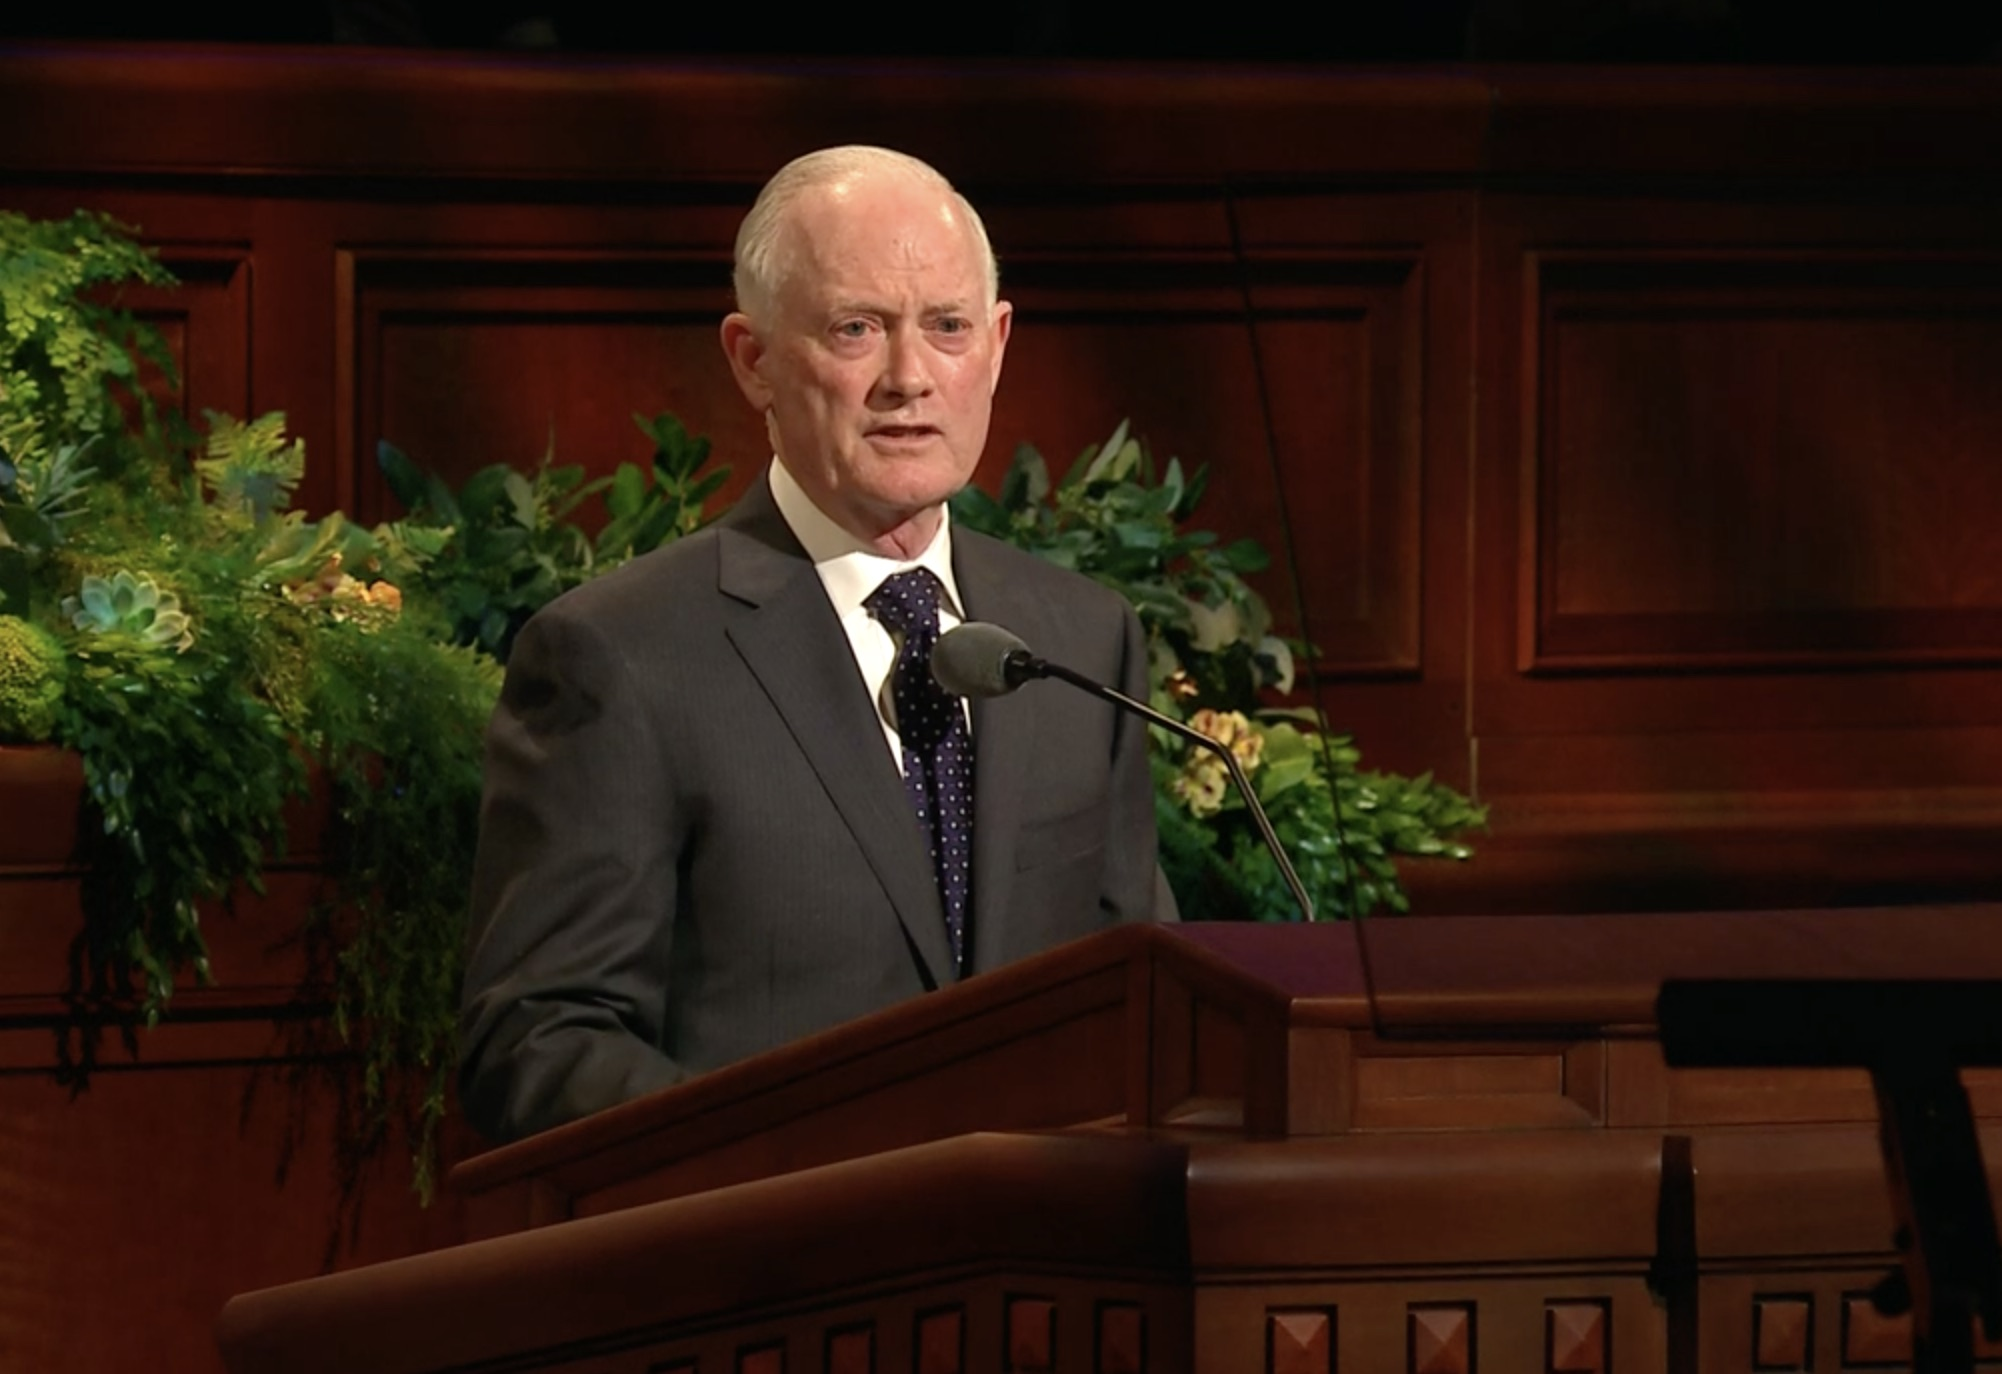 Elder Kim B. Clark, a General Authority Seventy, gives his address during the priesthood session of the 189th Annual General Conference on April 6, 2019.